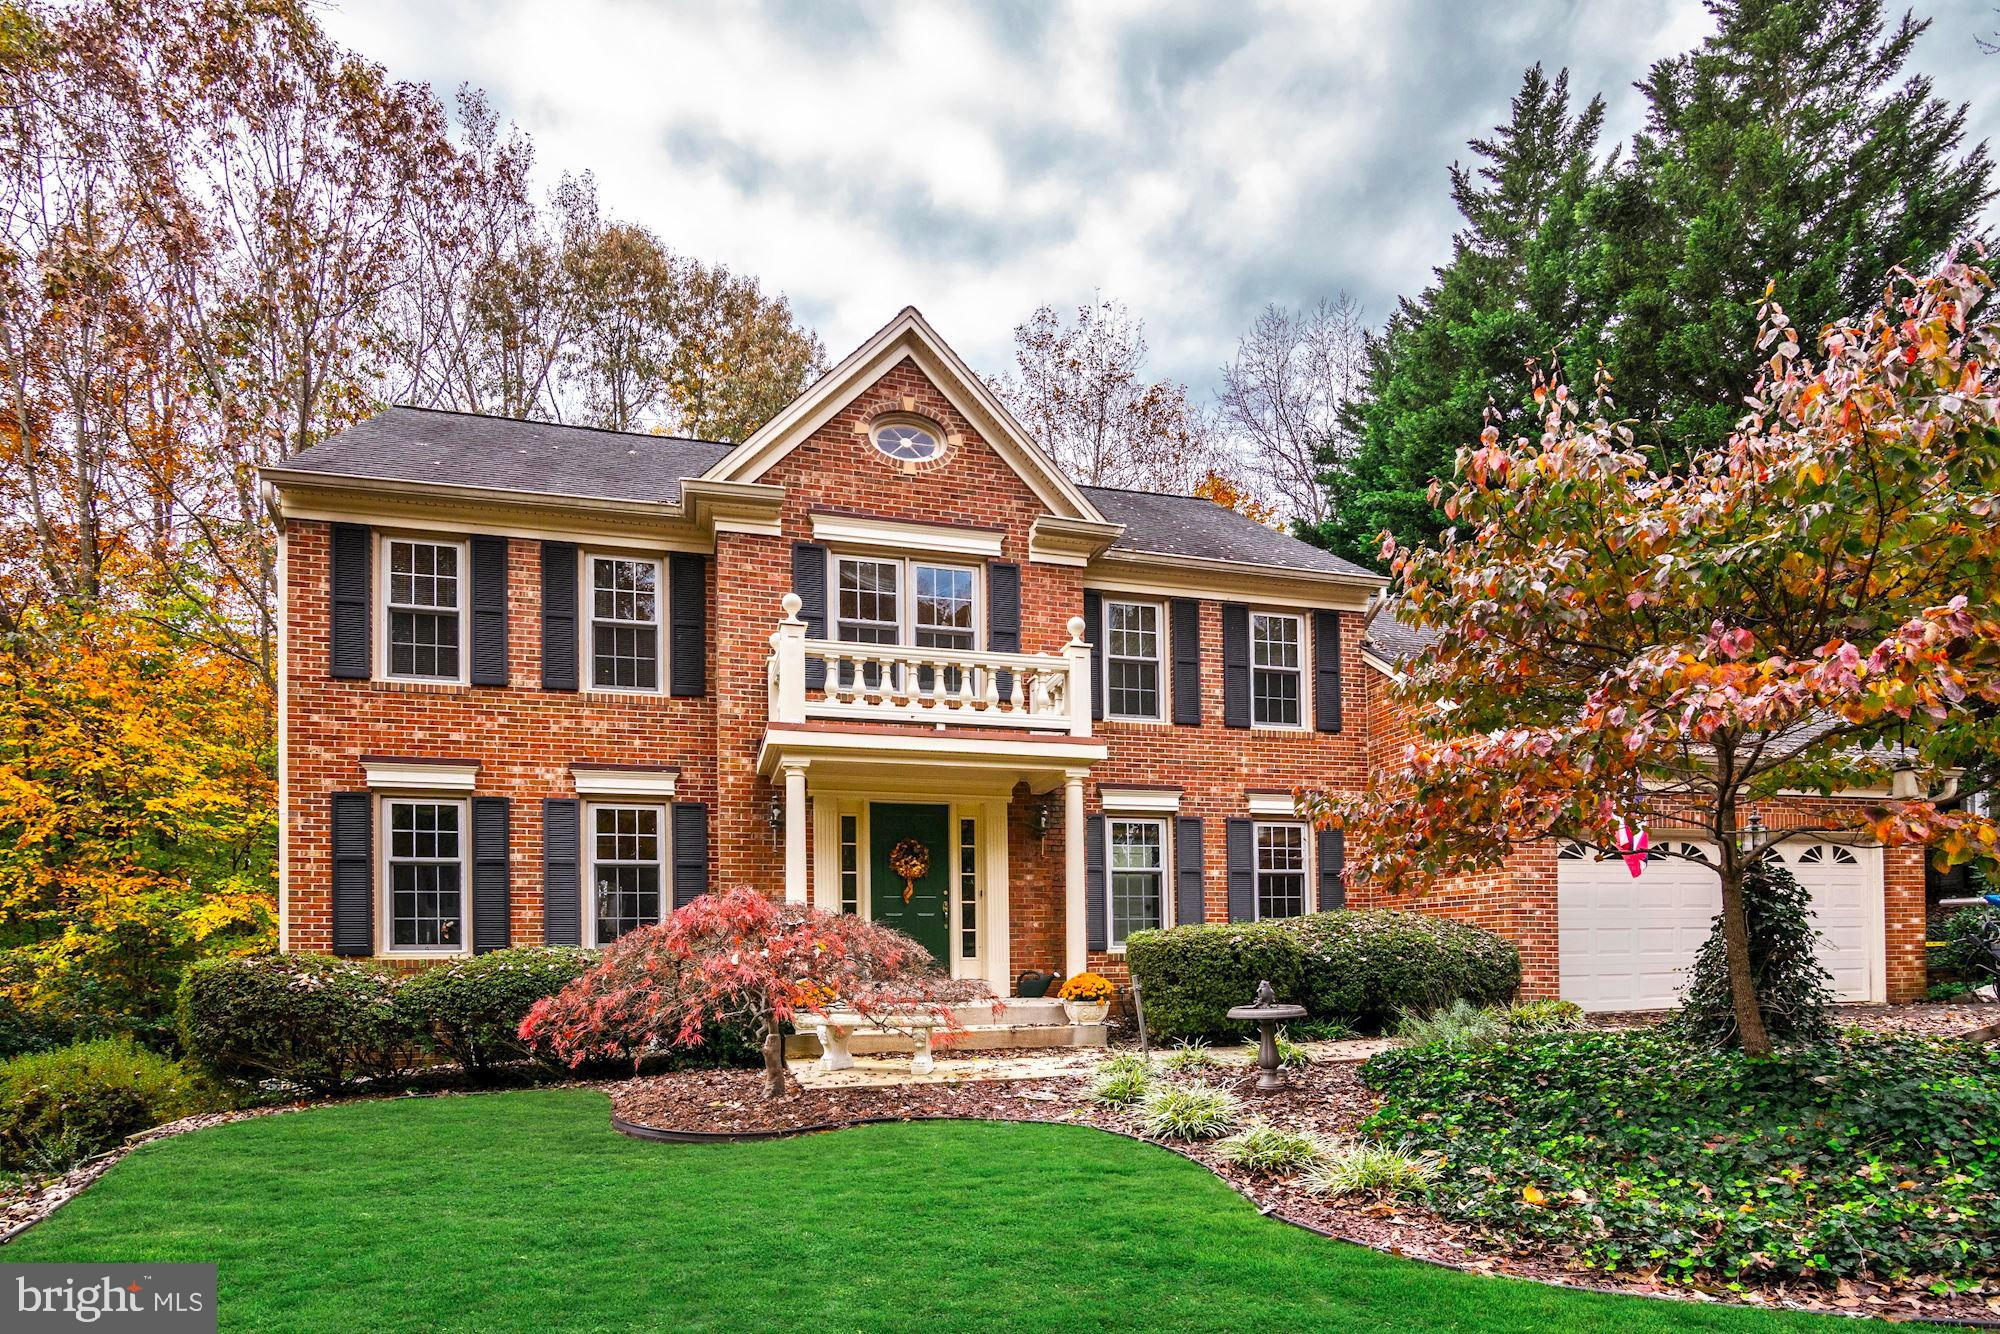 $20,000 price drop from original!                                                                                                                                                                                                                                                                    Zensational! Delight in an enchanting Asian garden setting of Japanese Maple, dogwood, white rock pathways, variegated hosta, a profusion of azalea, off-set by a soothing stacked rock waterfall.  This stunning 4,000 SF 4BR, 3.5BA, double car garage colonial is all about a gracious, spacious and serene lifestyle. Located on a cul-de-sac in sought-after Lynnwood against a wooded back-drop, this half-acre gem affords beauty within and without. A charming glassed-in sunroom with hot-tub overlooks an imposing multi-level decking and staircase which serves as a perfect vantage to observe the amazing Koi pond. Aesthetic, practical and security upgrades are abundant throughout this 3-level home perfect for entertaining with an easy party flow for fun gatherings and pockets of privacy. Afternoon sunshine bathes the formal dining room, updated kitchen, breakfast area and delightful sun-room. Impeccably maintained, home features brand new air-conditioning, renovated kitchen/ baths, vinyl replacement windows, insulated vinyl siding and trim wrap, high end stainless steel appliances, gas fireplace,  2 dens/ study/ library, expanded pantry, walk-out recreation room to paved patio, HUGE storage in basement for workshop, crafts, hobbies. Home Owners Warranty offered.  You have to see for yourself. Care and devotion to this home is seen everywhere. Charm and elegance is its just reward. Enjoy! Welcome home. You won't want to leave.